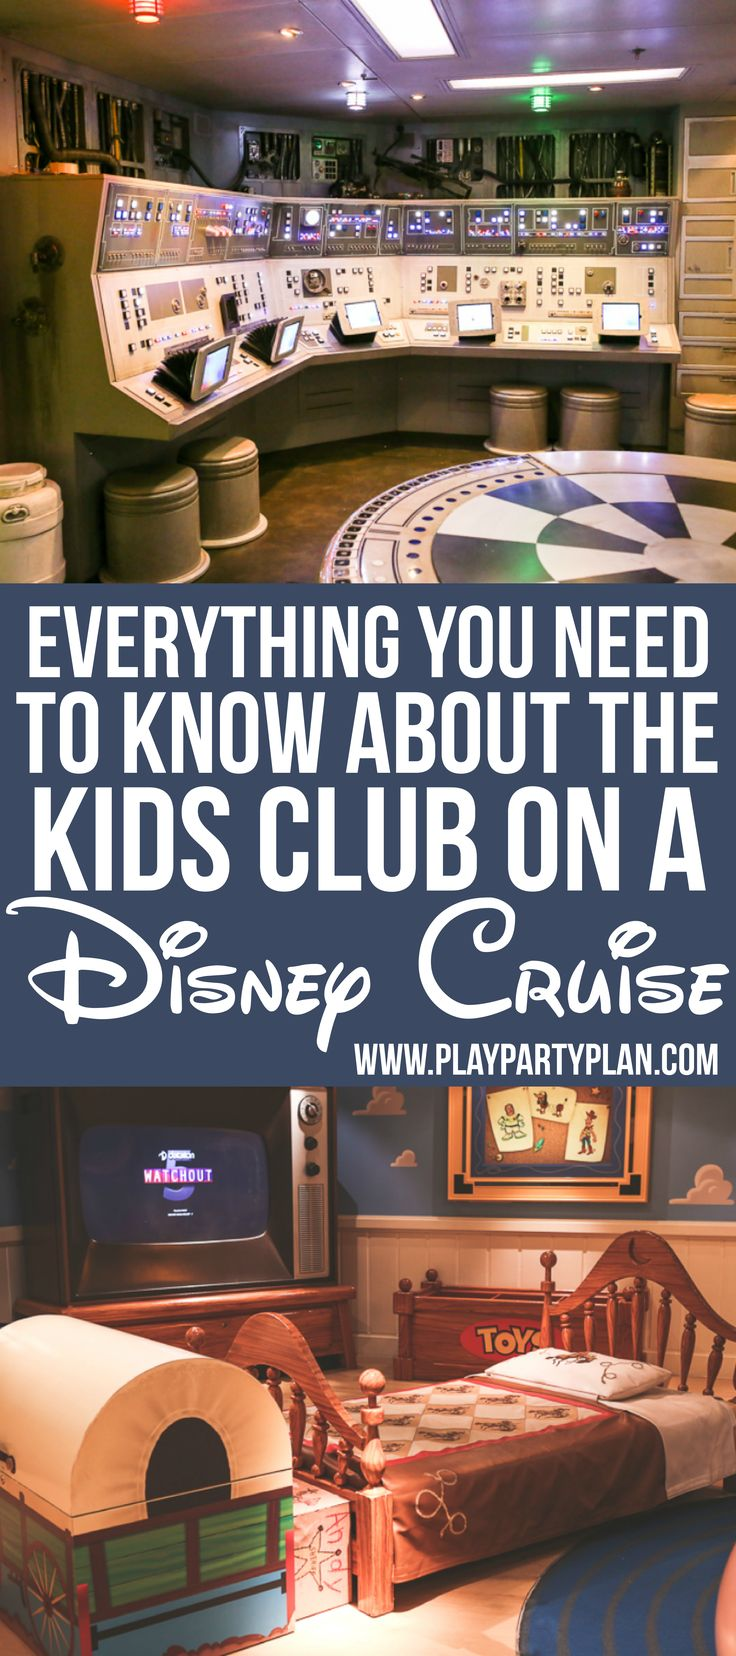 If you're planning your first time on a Disney Cruise or even considering a Disney Cruise, you need to read this post. Tons of tips and tricks, packing ideas, and secrets to the magic and wonder of Disney cruise lines and Castaway Cay. Who knew Disney Cruises were so cool for adults, teens, and even preschoolers! I'm definitely trying out the door decor and fish extenders on our next cruise!